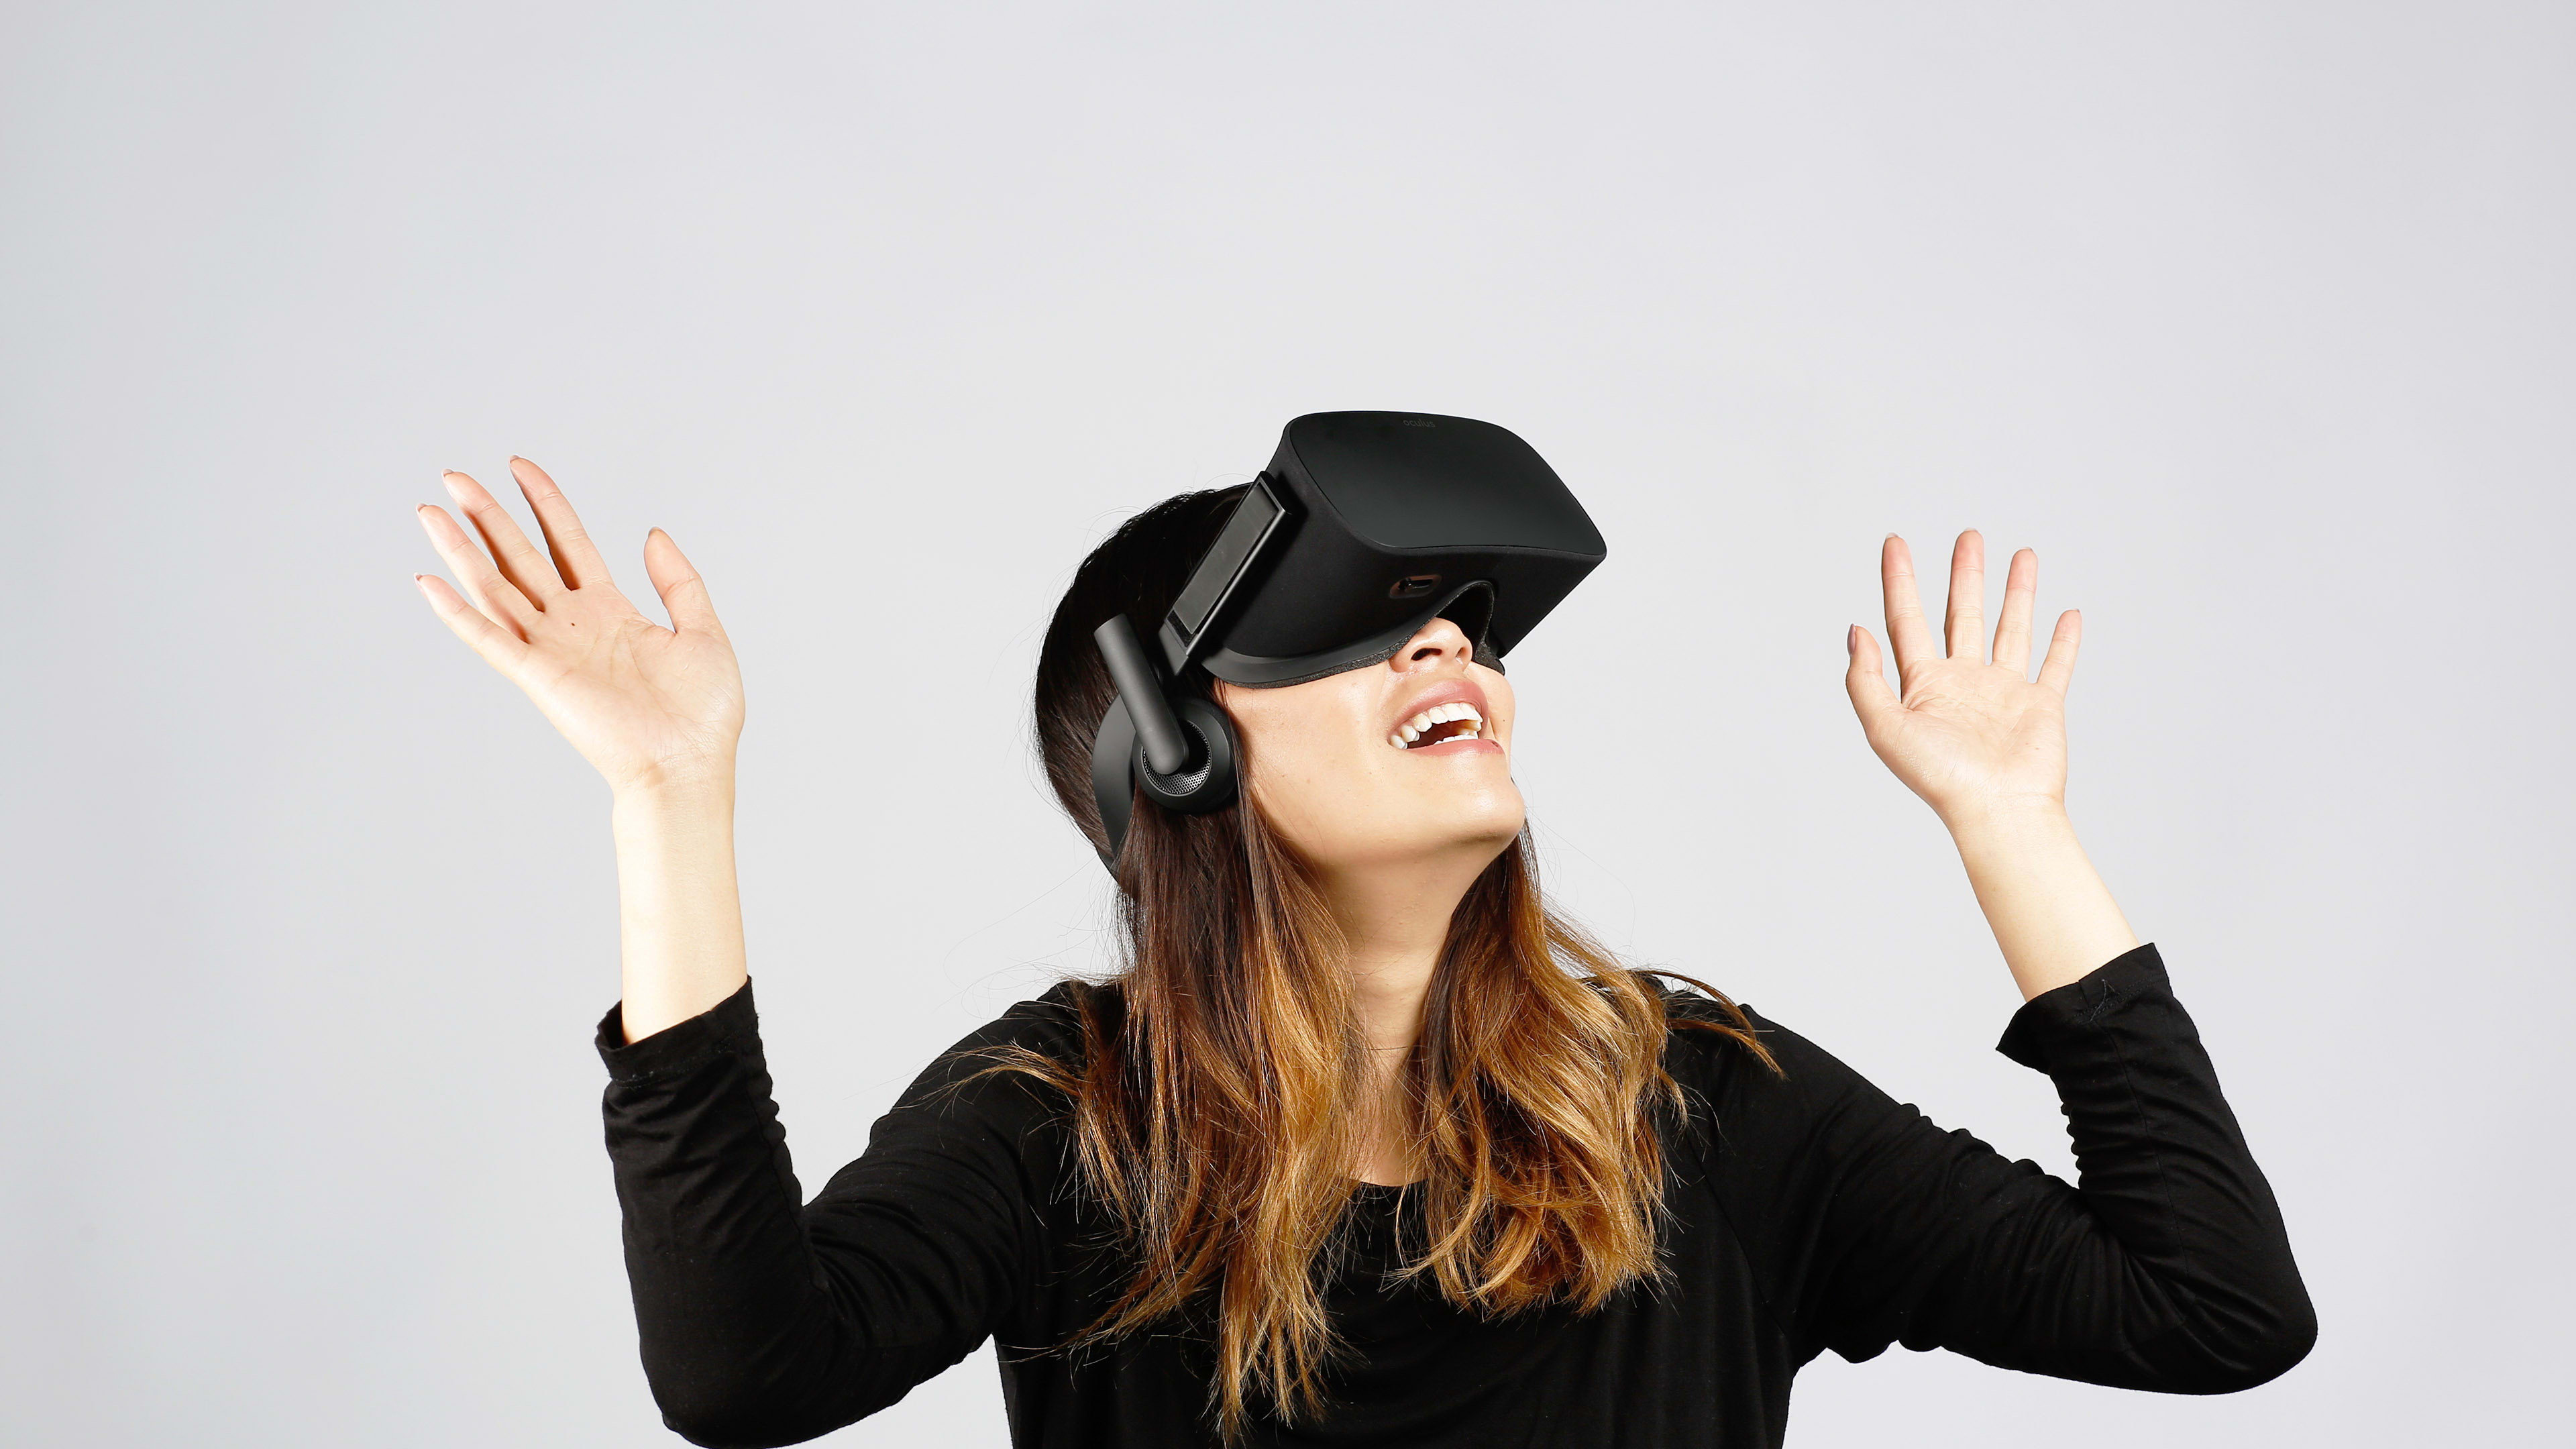 d079949f4e9 Oculus Rift comes to 48 Best Buy stores May 7th